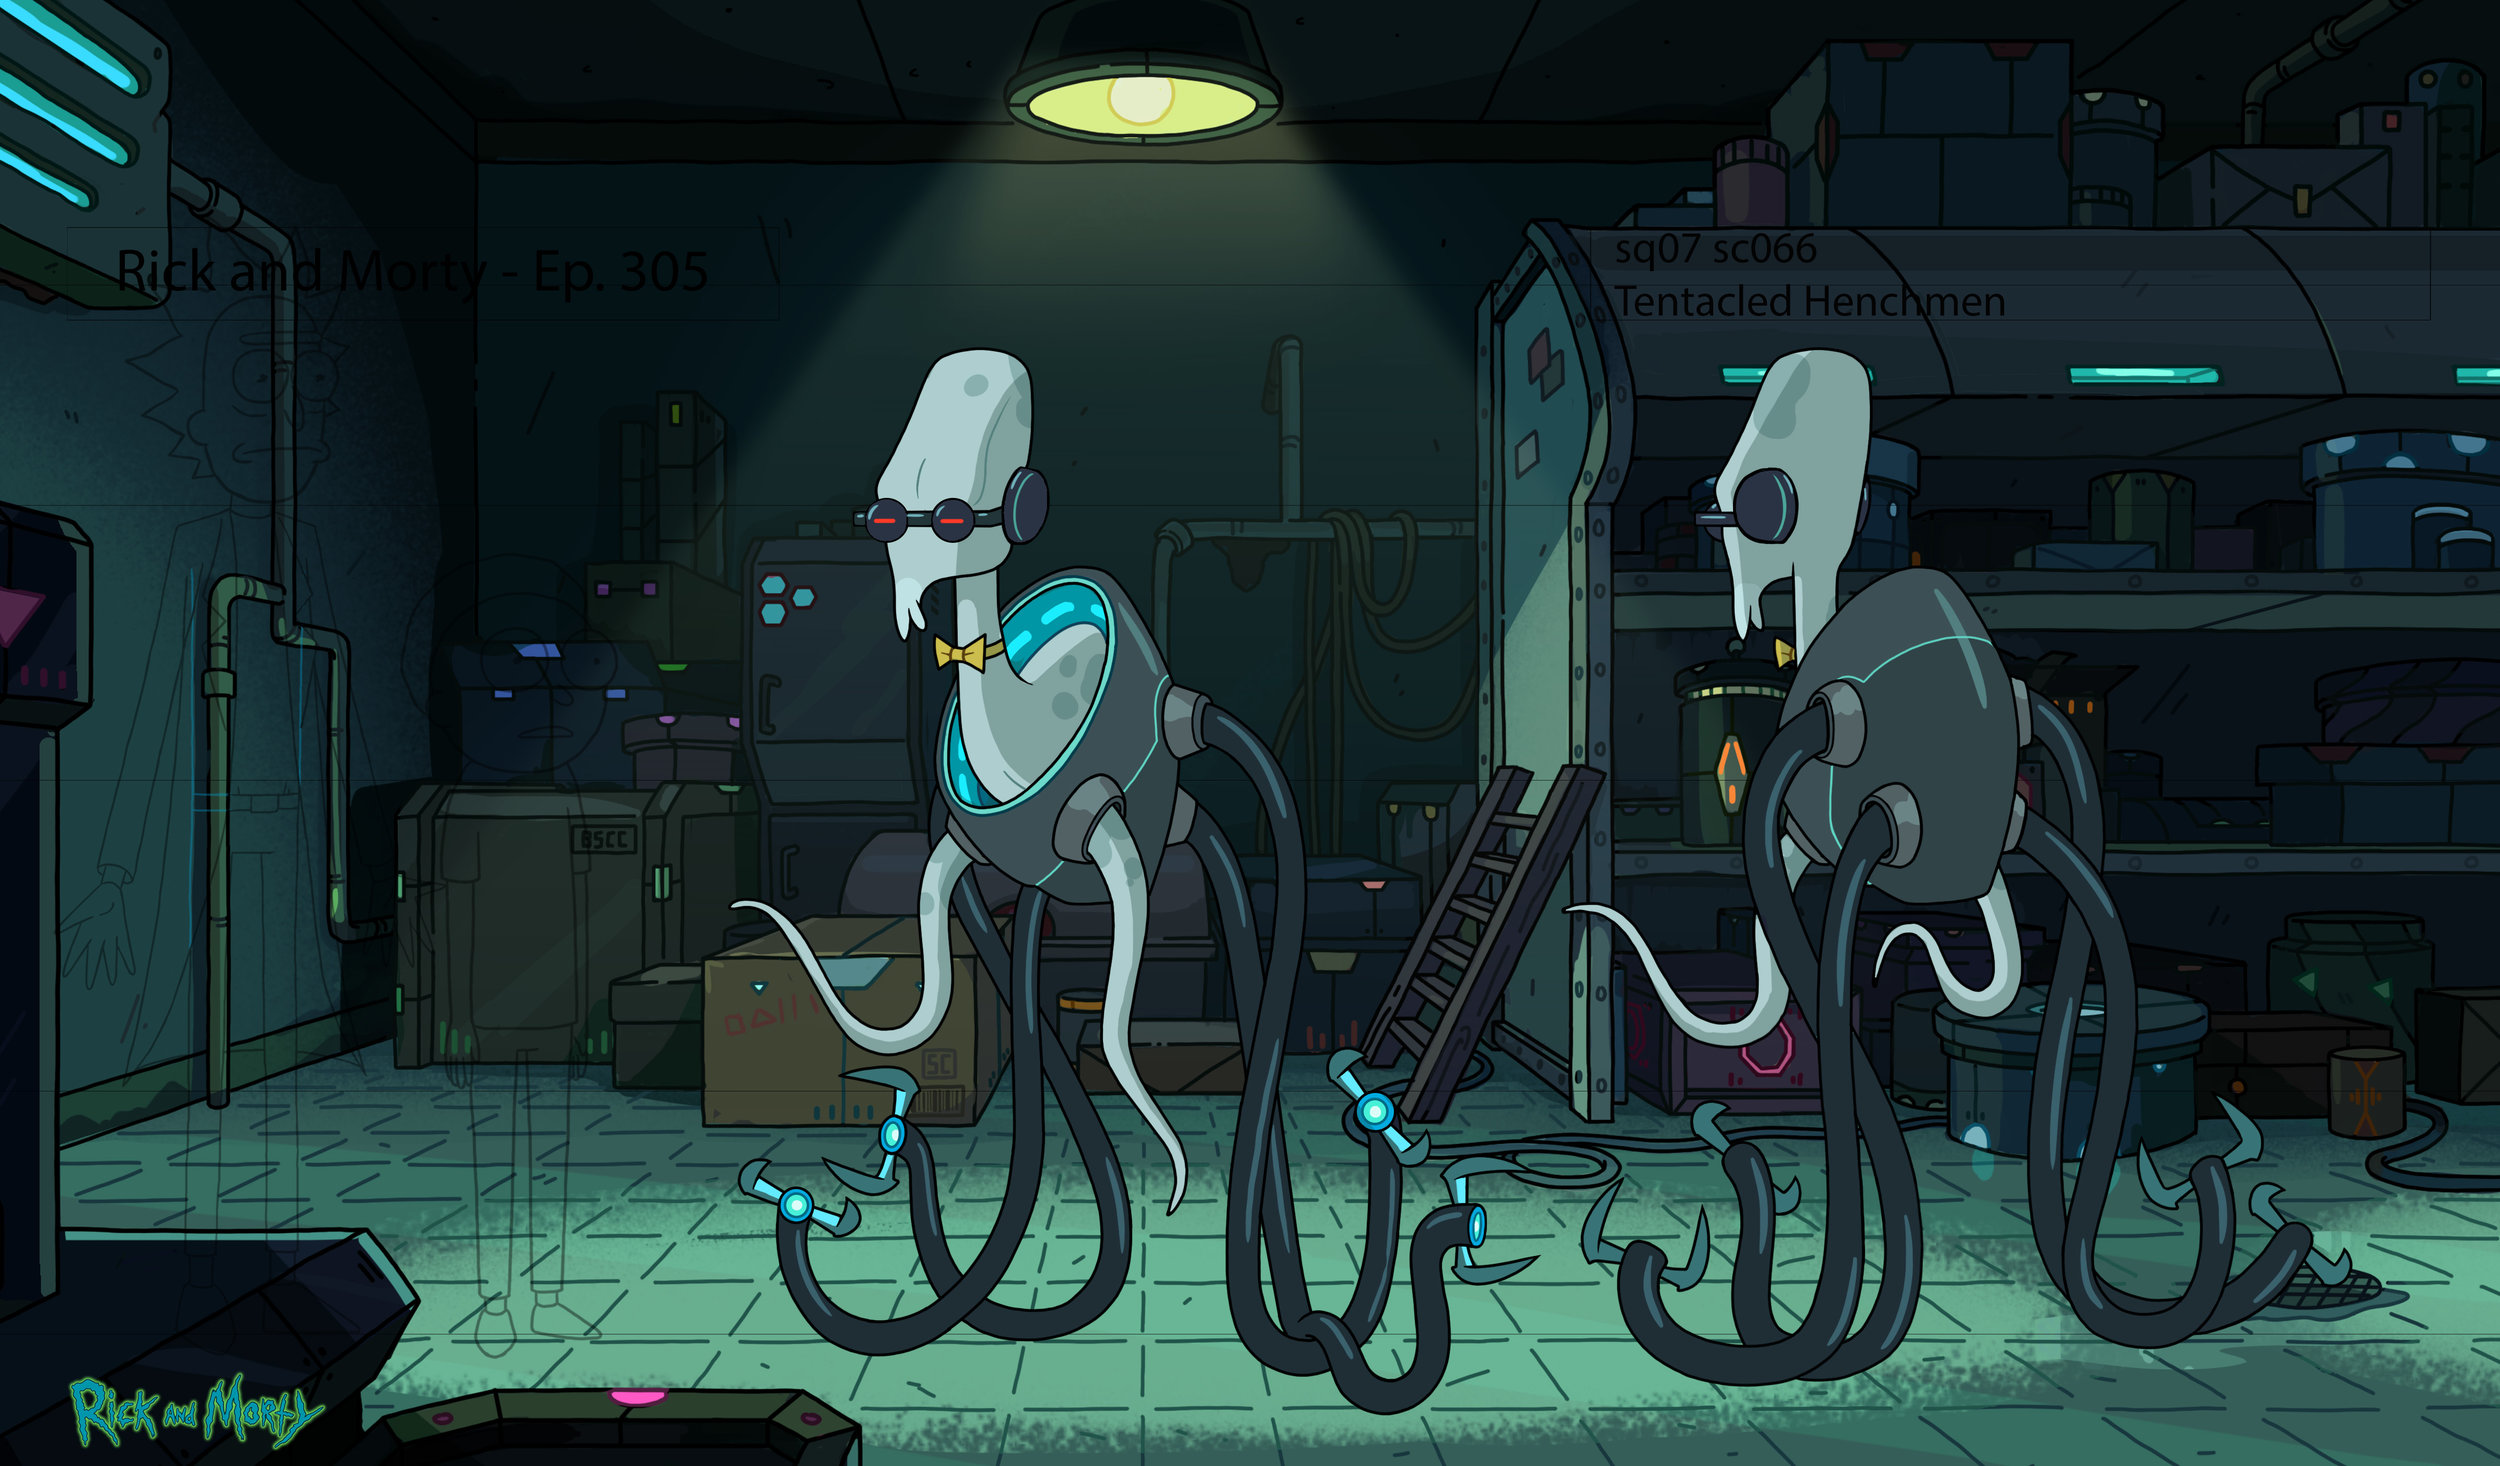 305_CH_sq07sc066_Tentacled_Henchmen_Color_V1_CB.jpg